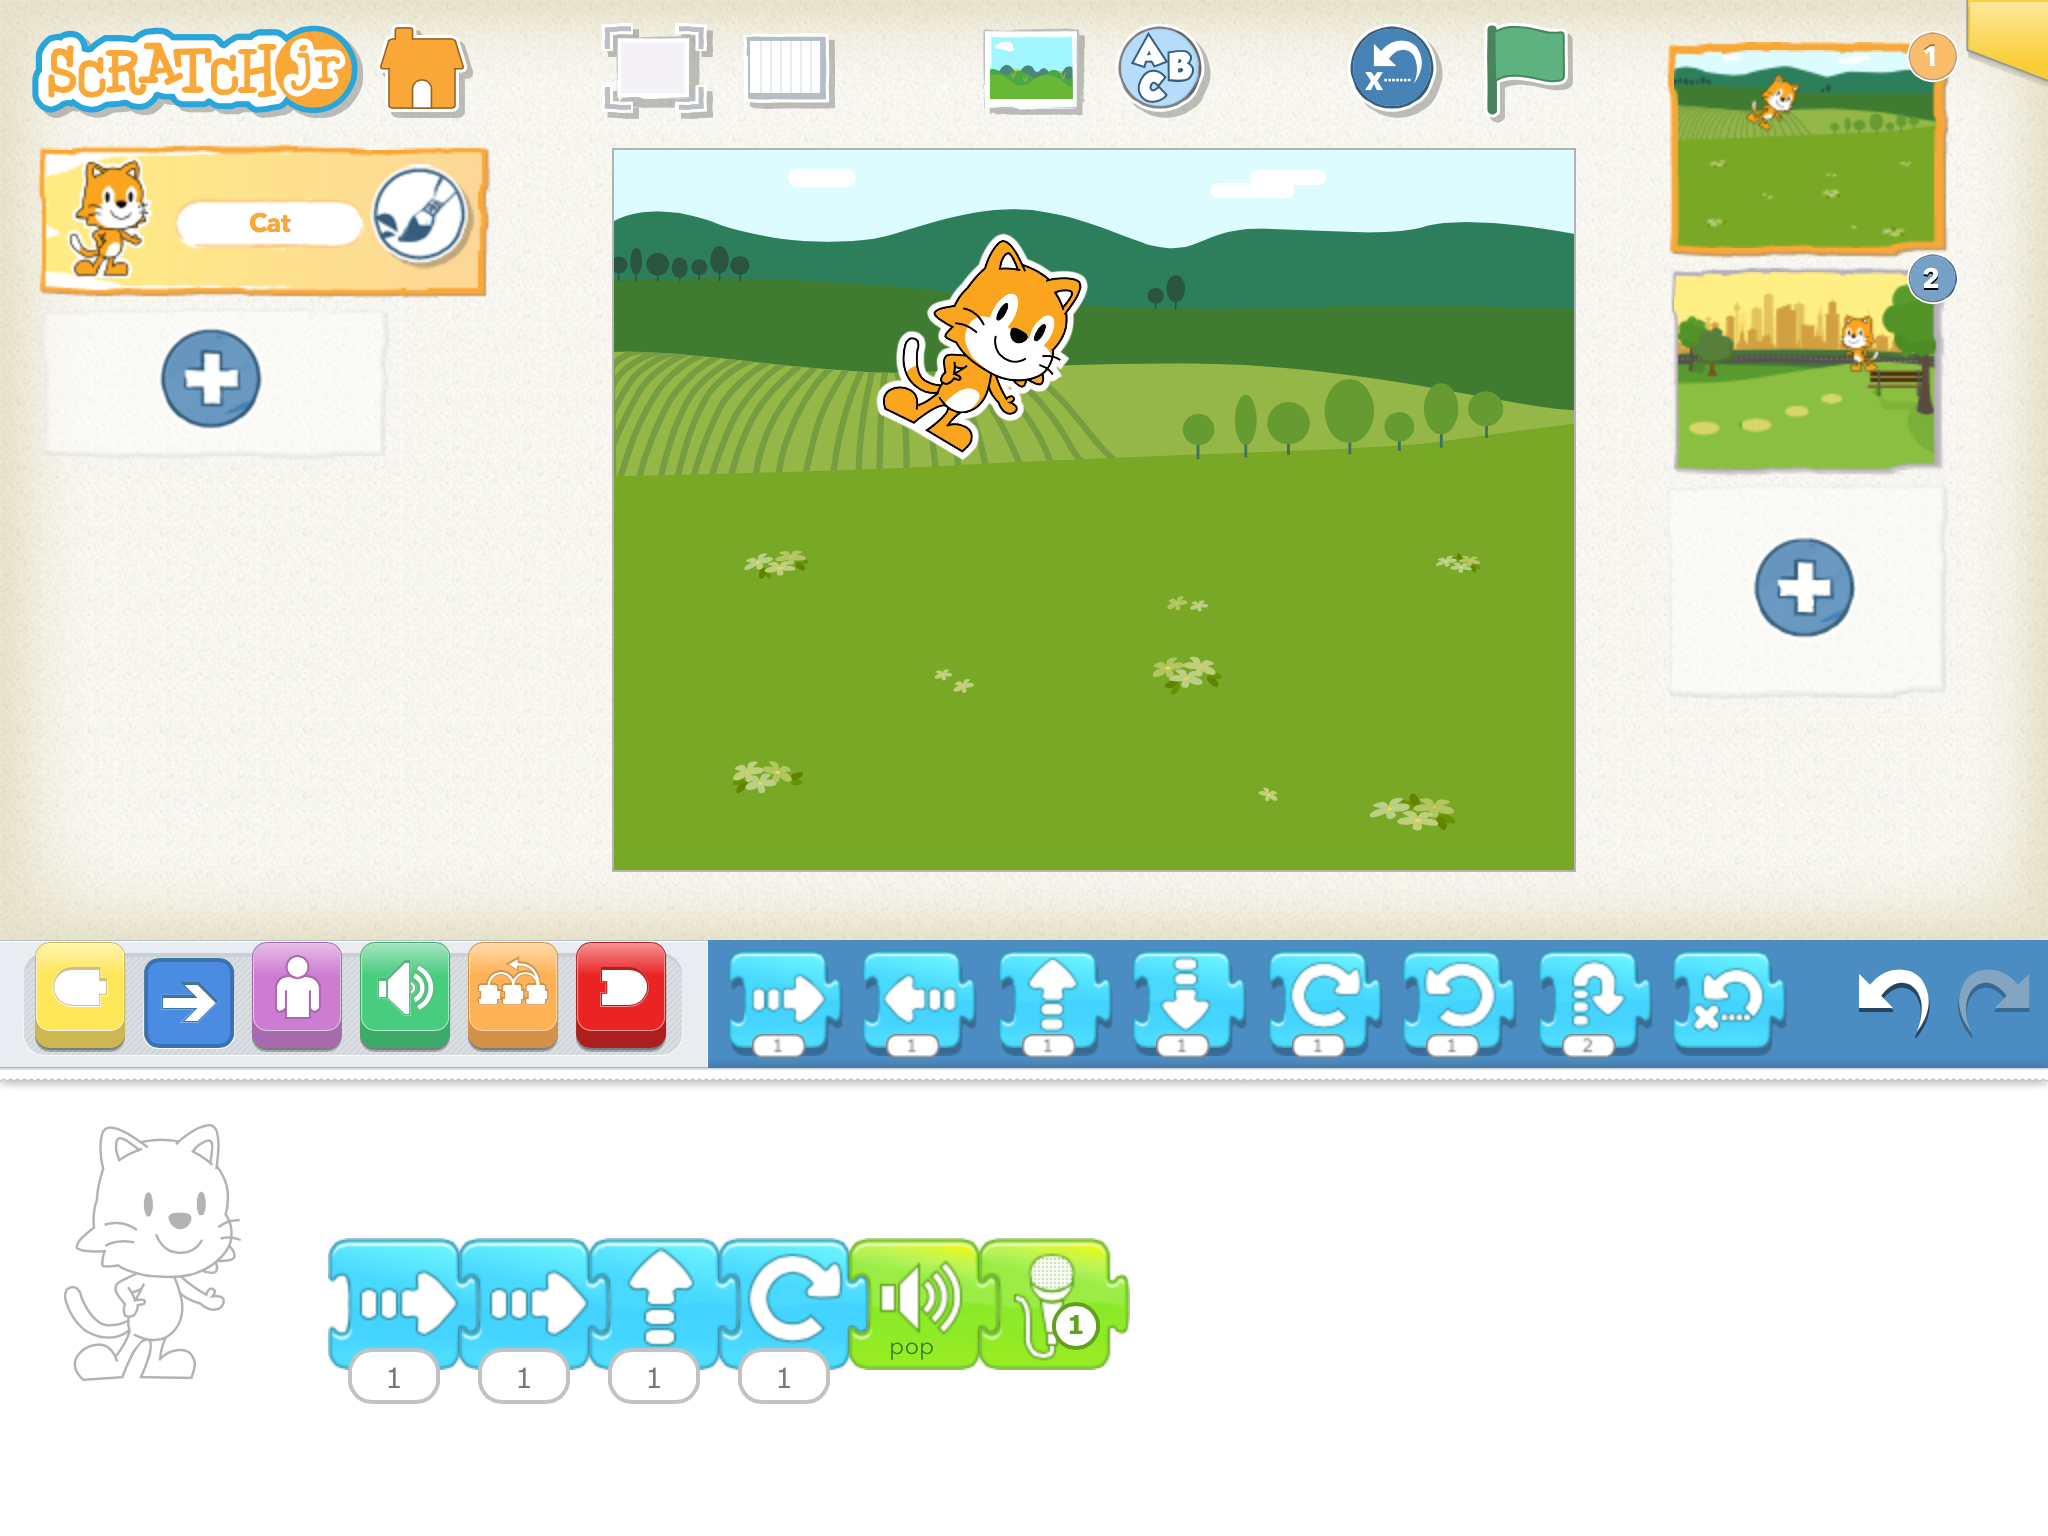 Scratch junior til iPad